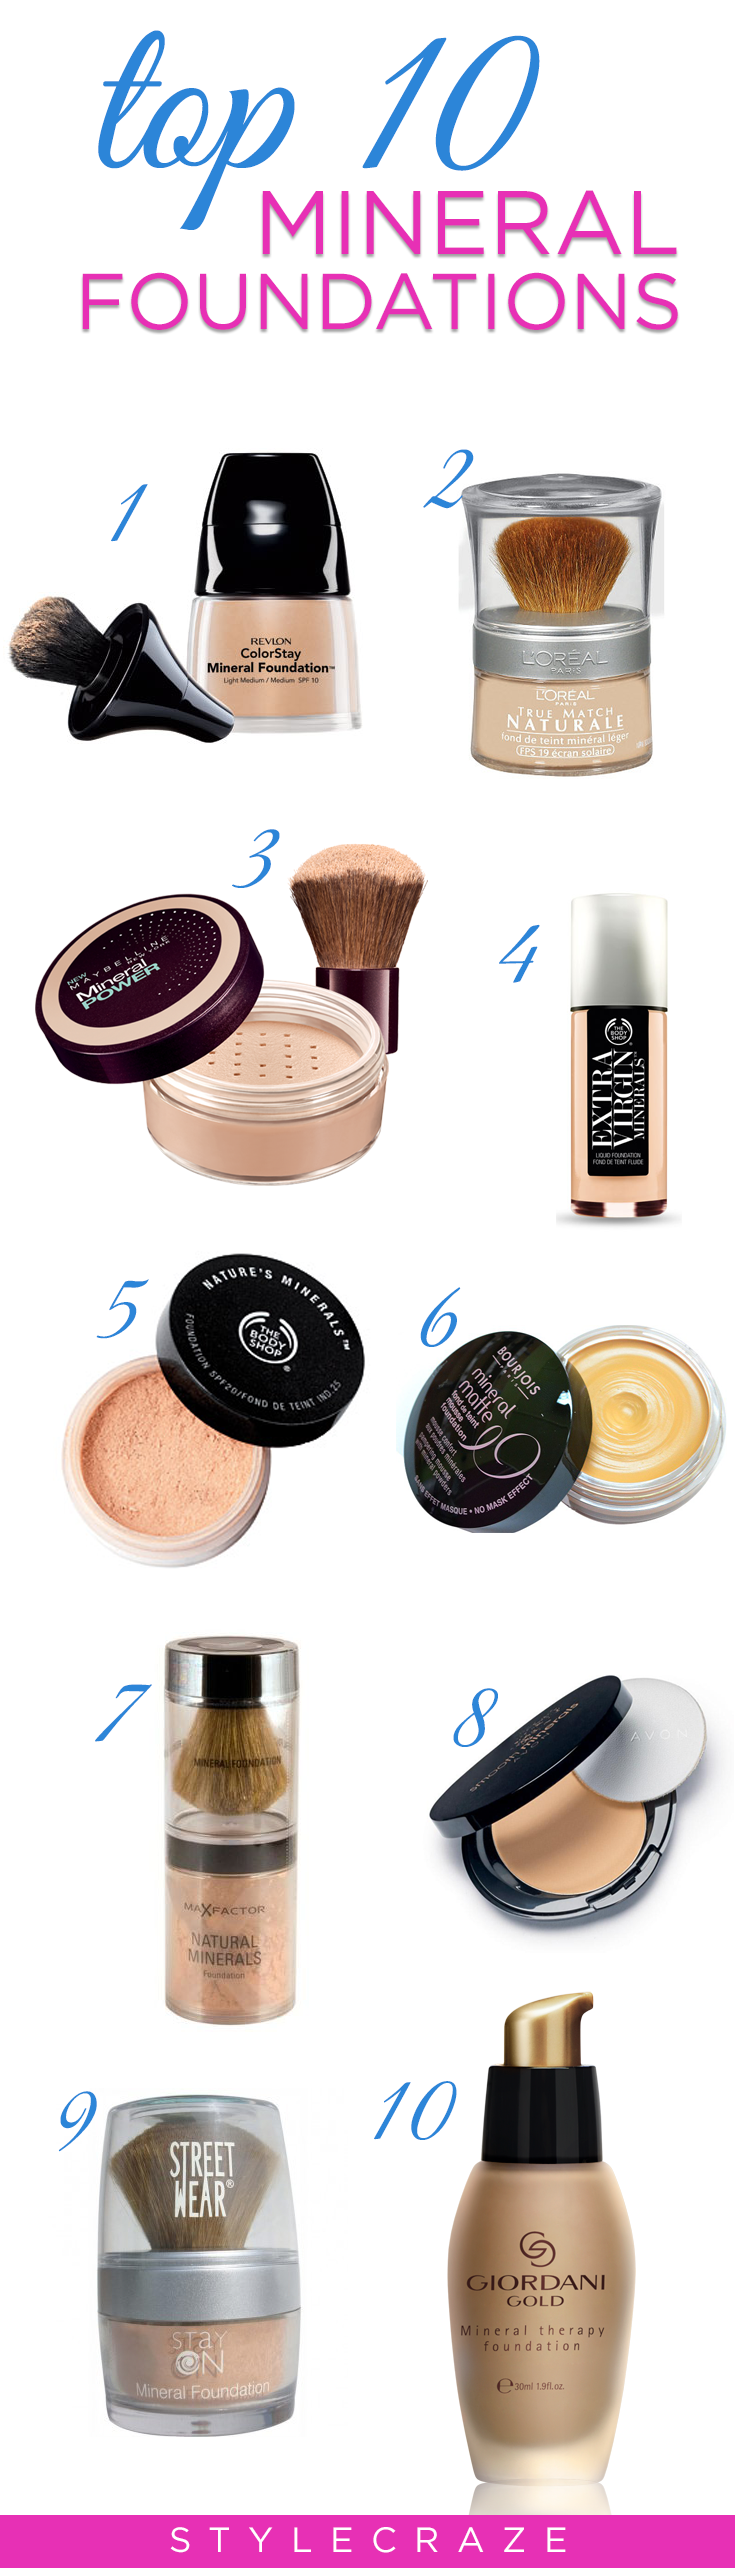 15 Best Mineral Foundations For All Skin Types No